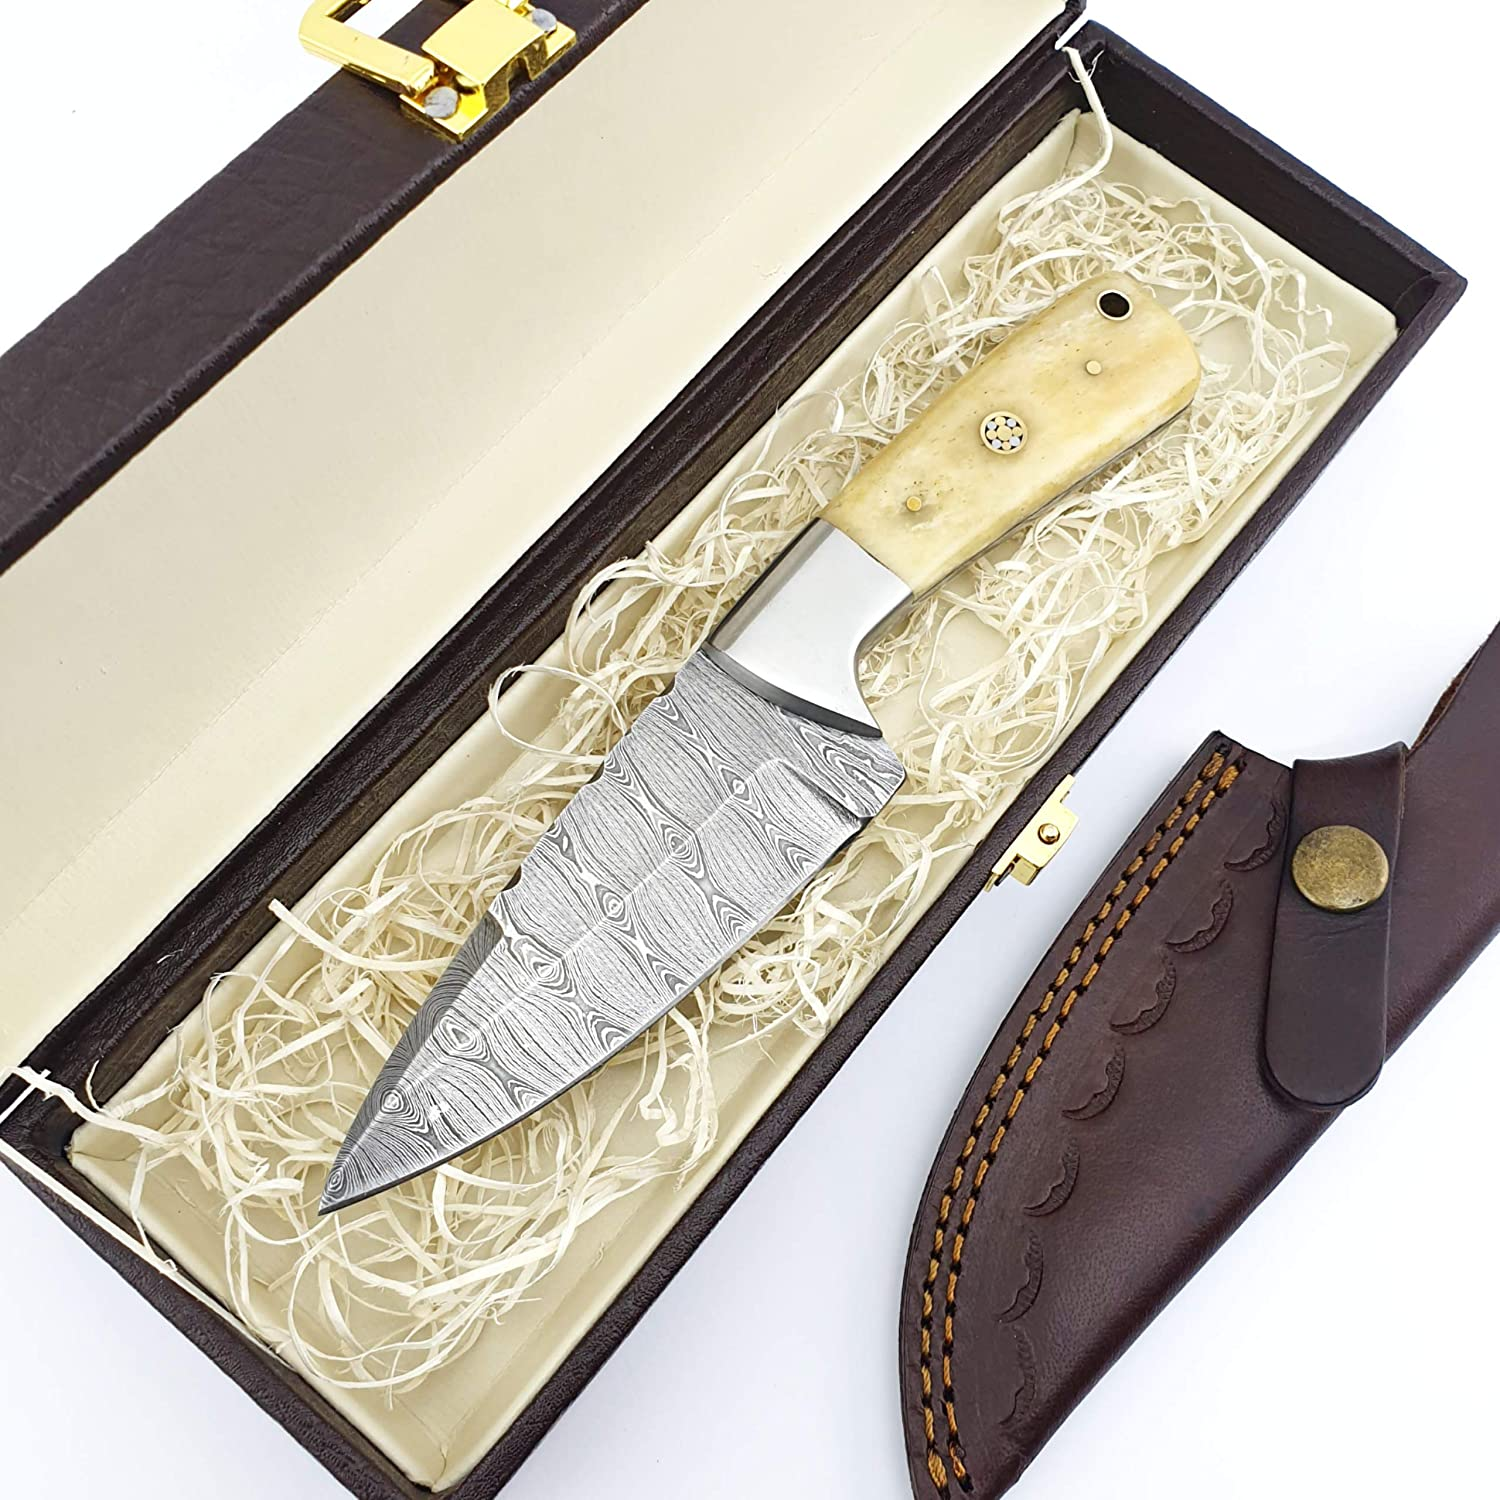 SS-1 Knife4U Damascus Hunting cheap Max 79% OFF Knife Best with Sheath Camping 8